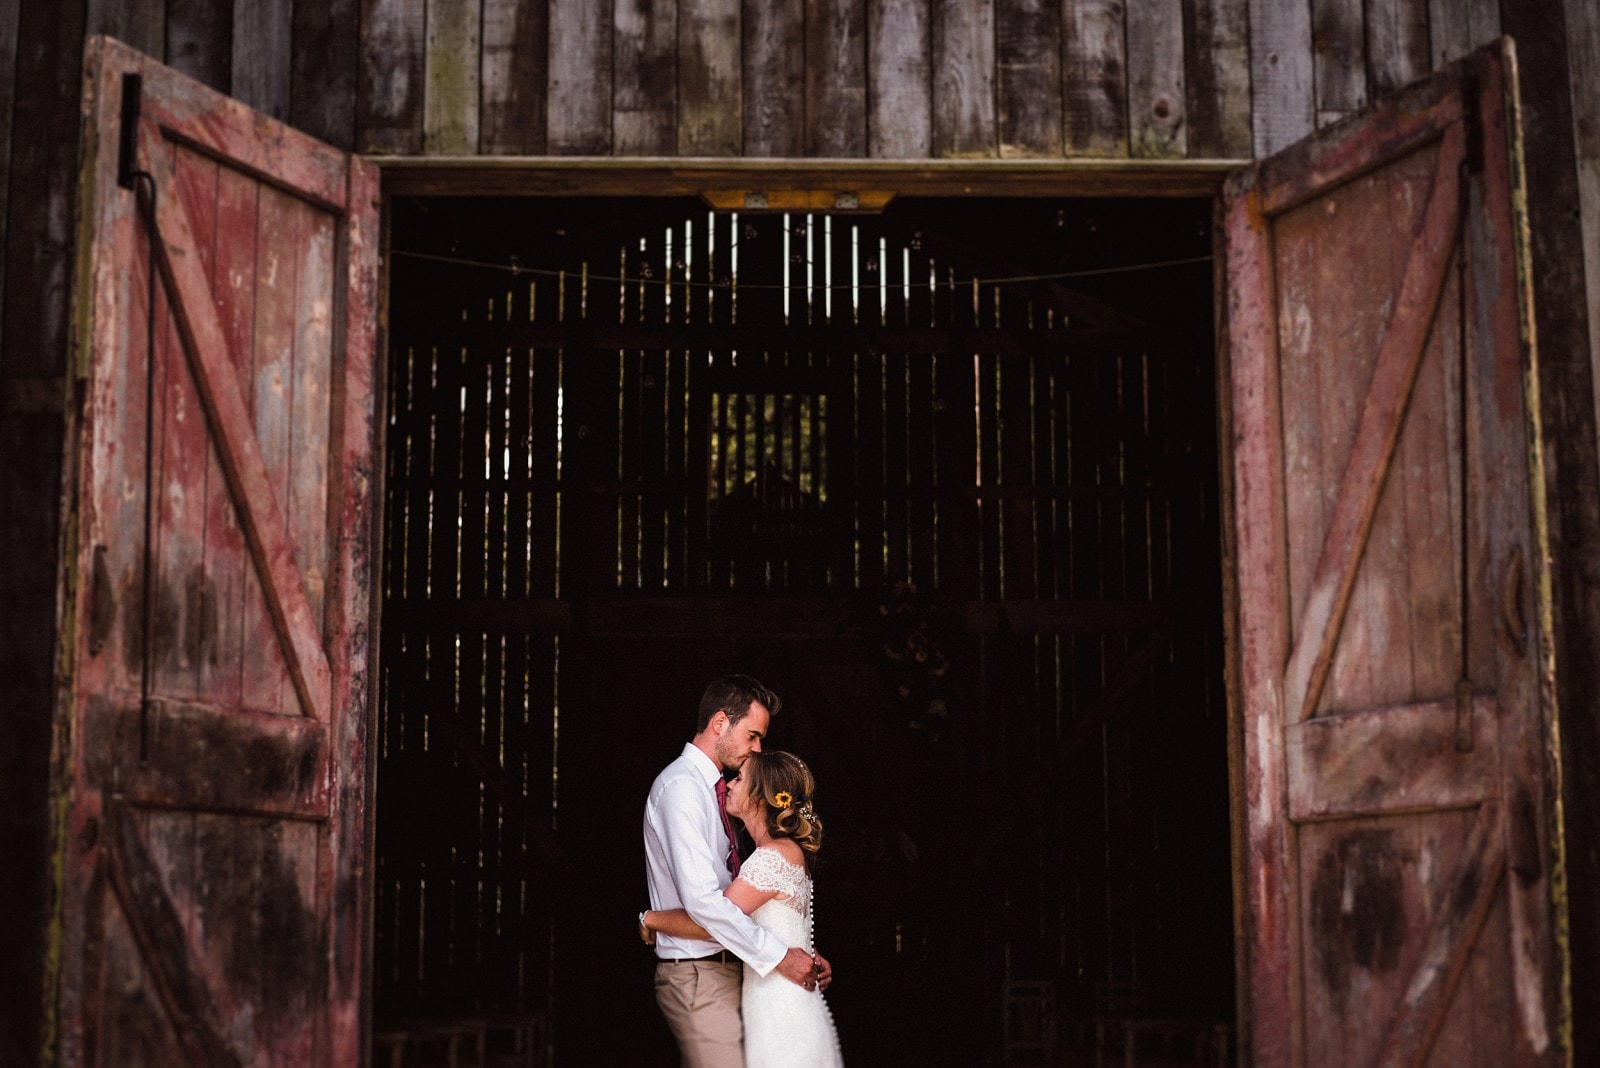 The couple hug in the Rusty Barn at Nancarrow Farm on their wedding day